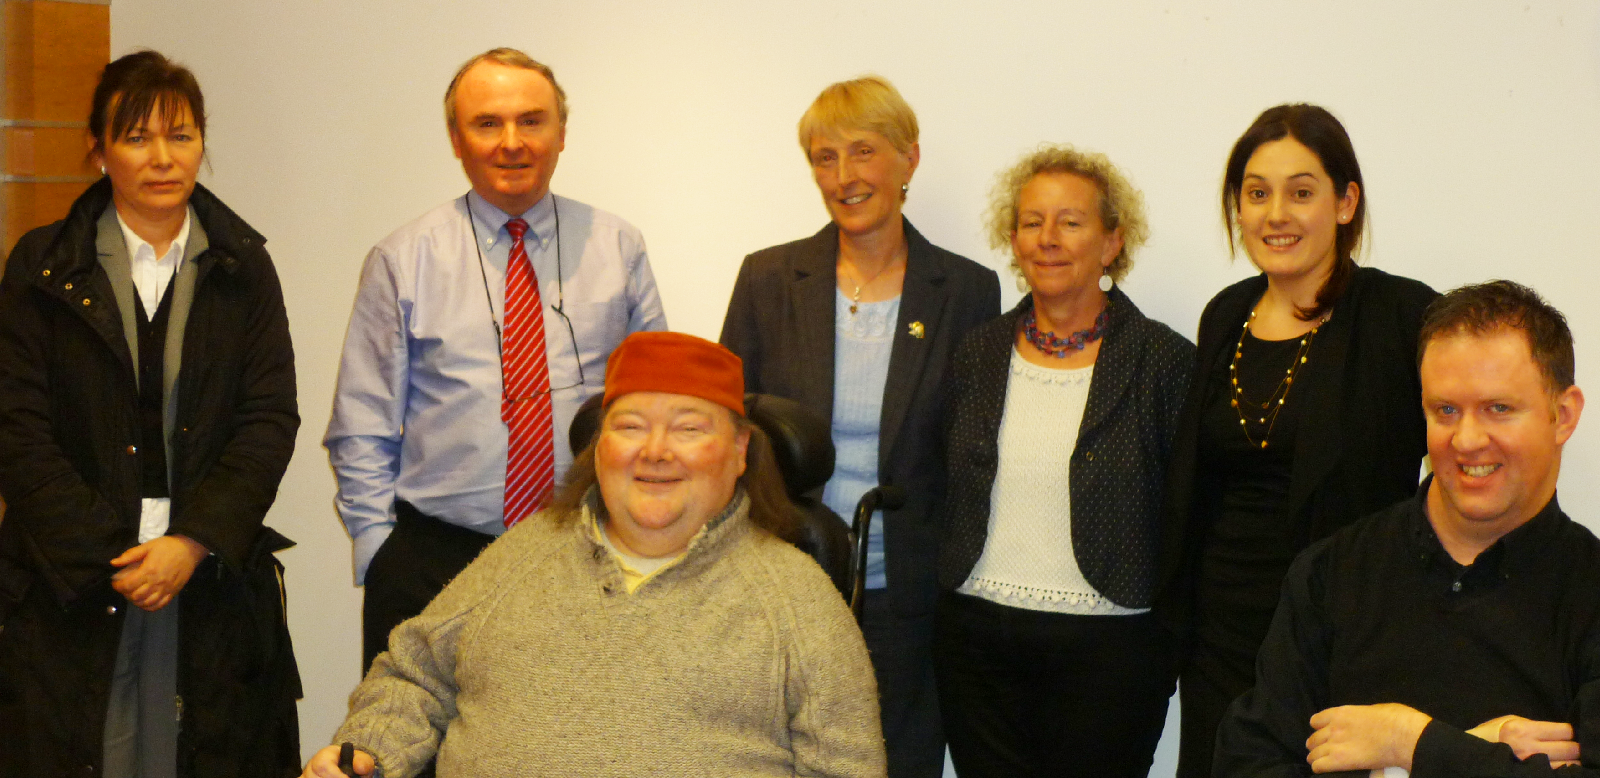 L-R:Breda Mulvihill (HSE), Mark Blake Knox (Cheshire Ireland), Claire Crehan Dowdall (Irish Wheelchair Association), Helen Lahert (Citizens Information Board), Aisling Jones (Áiseanna Tacaíochta), Owen Collumb (Áiseanna Tacaíochta participant), Martin Naughton (Director of Áiseanna Tacaíochta)